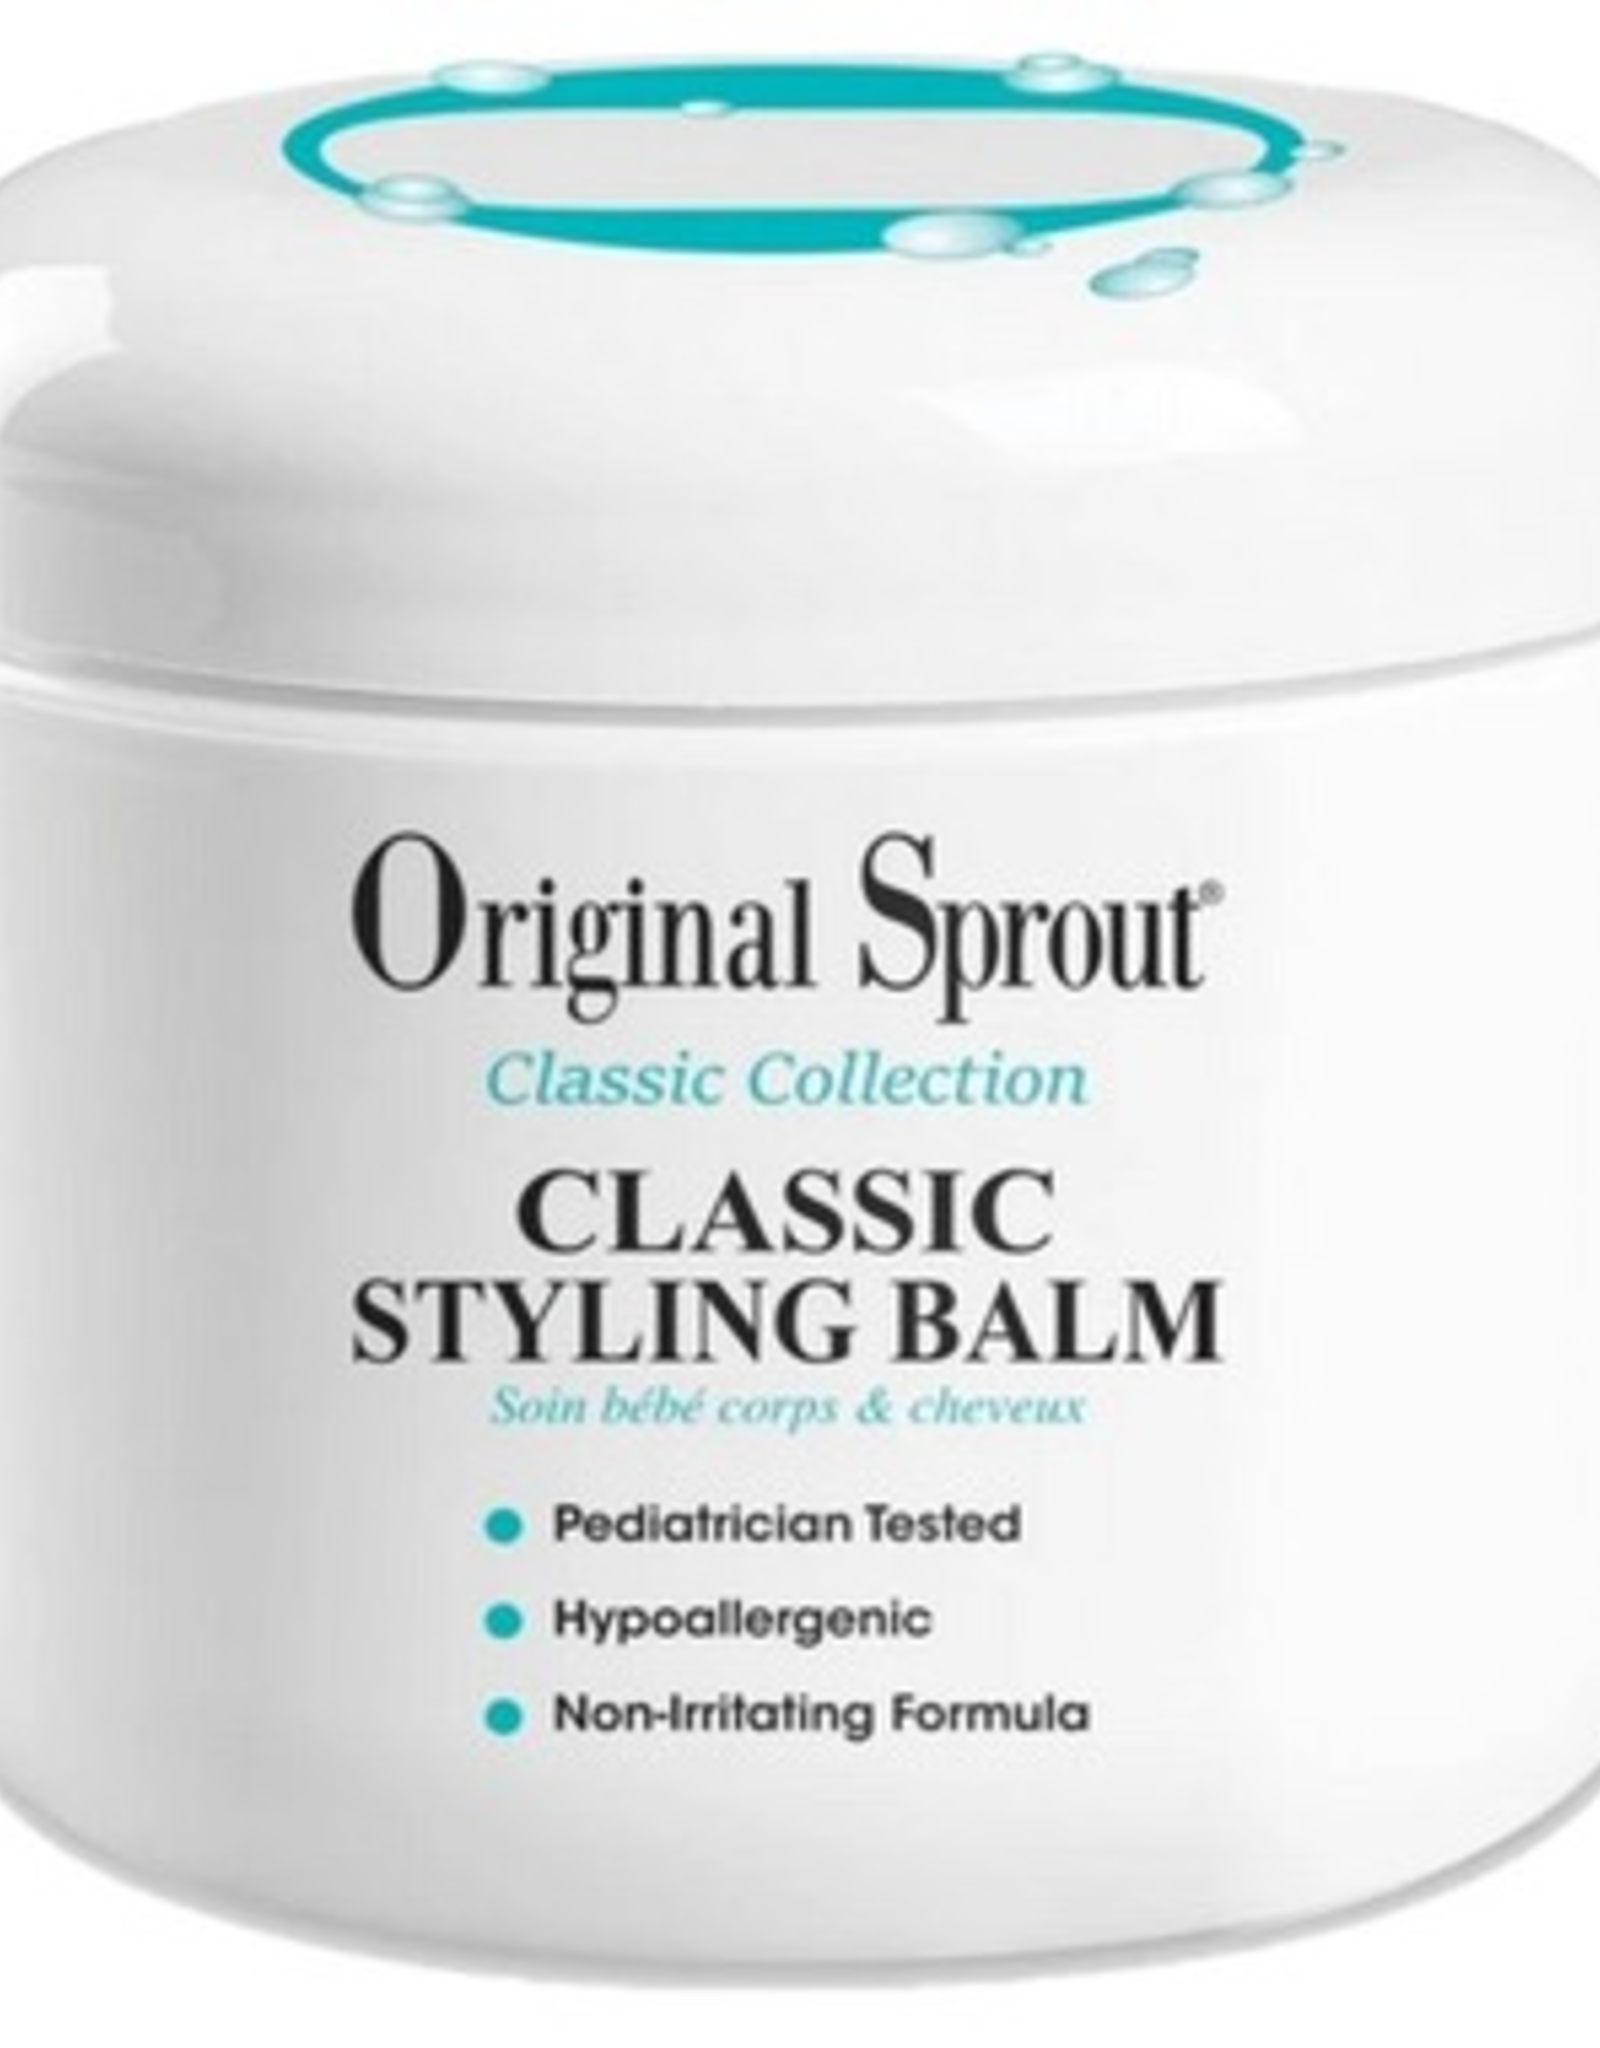 Original Sprout Original Sprout - Styling Balm